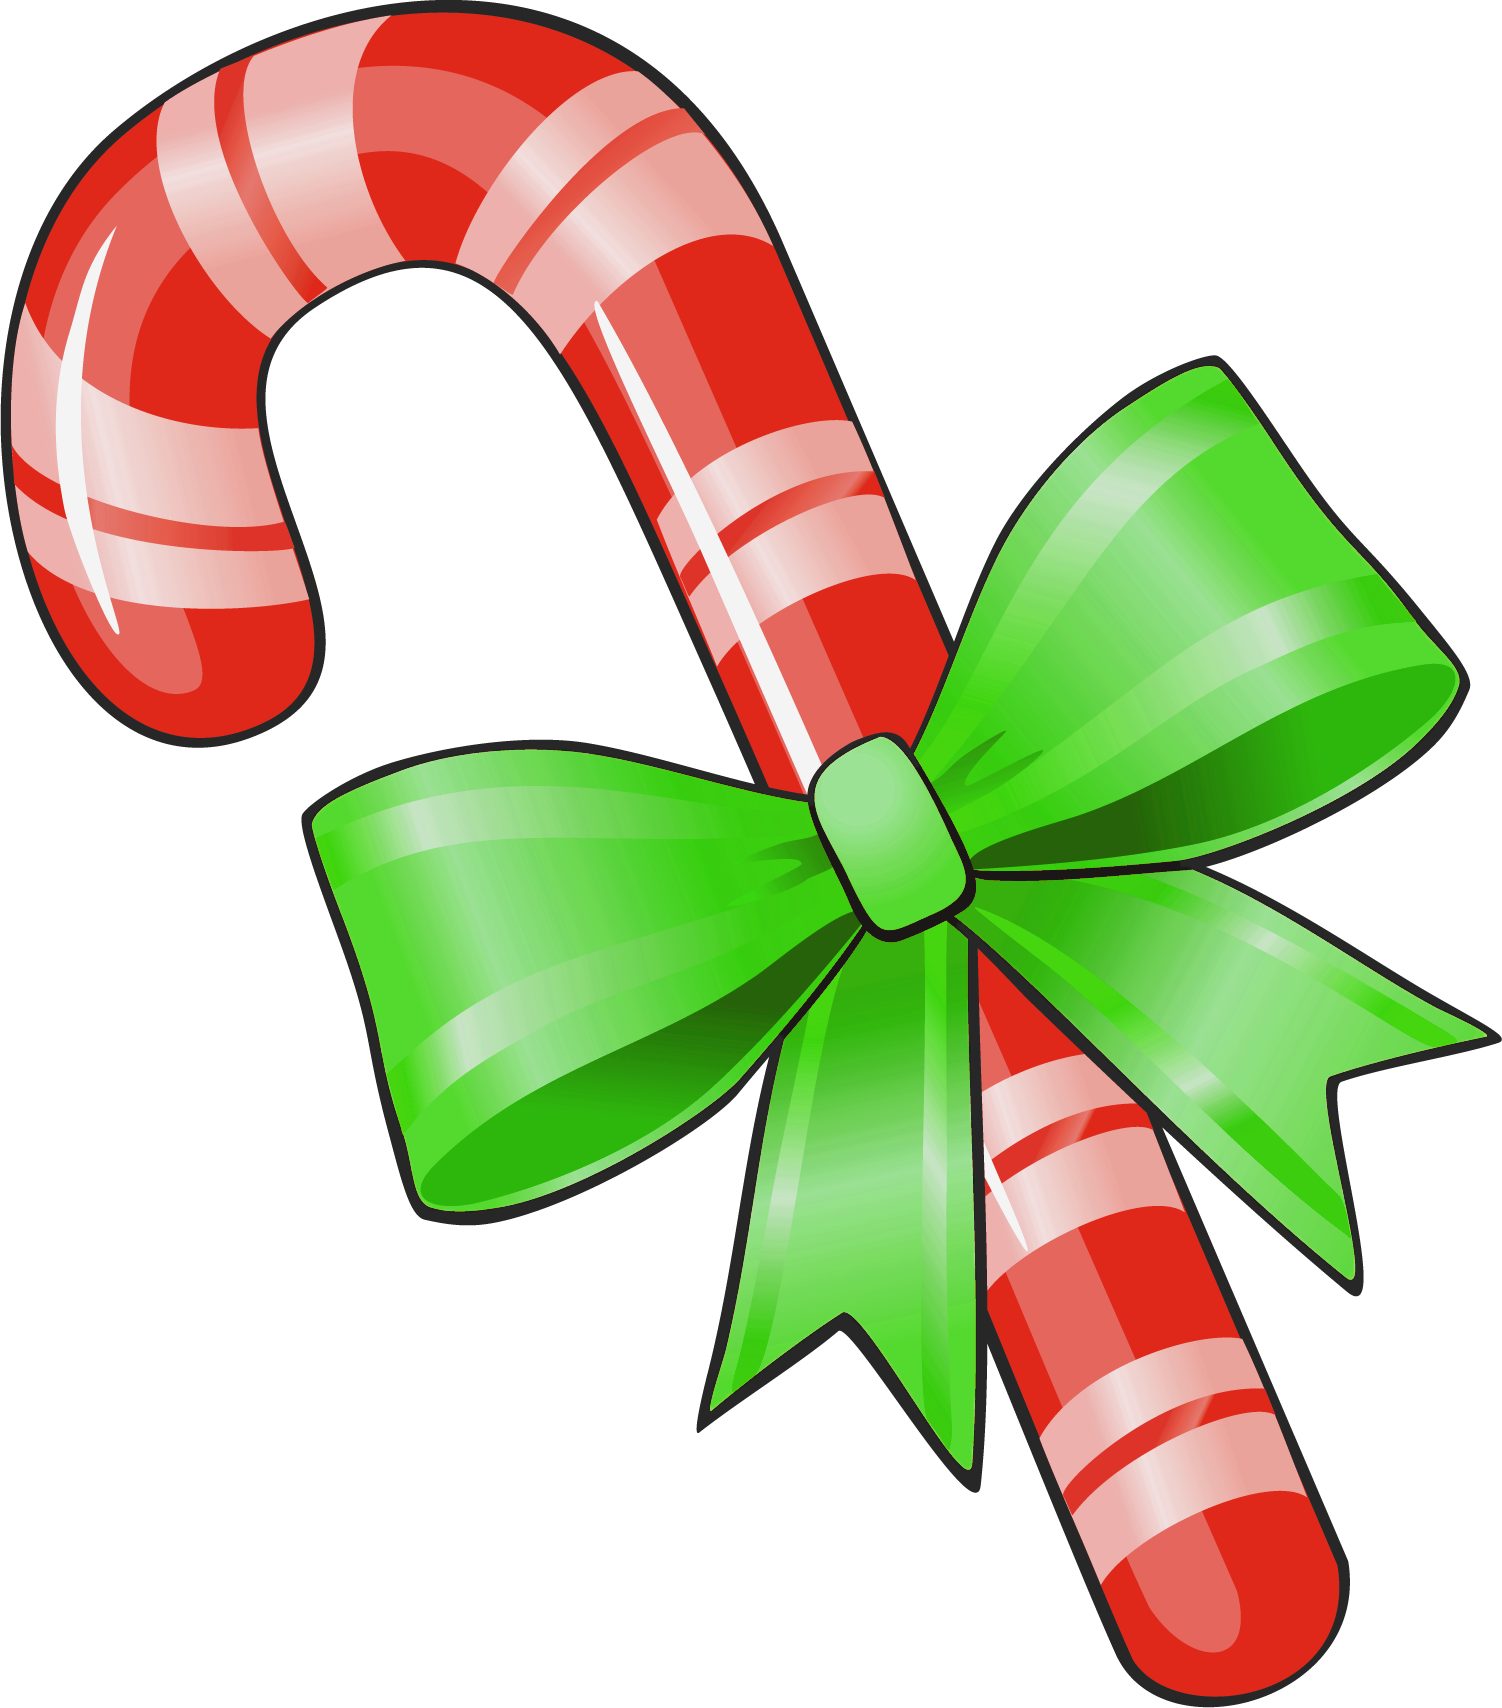 1502x1708 Transparent Christmas Candy Cane With Green Bow Clipart Image